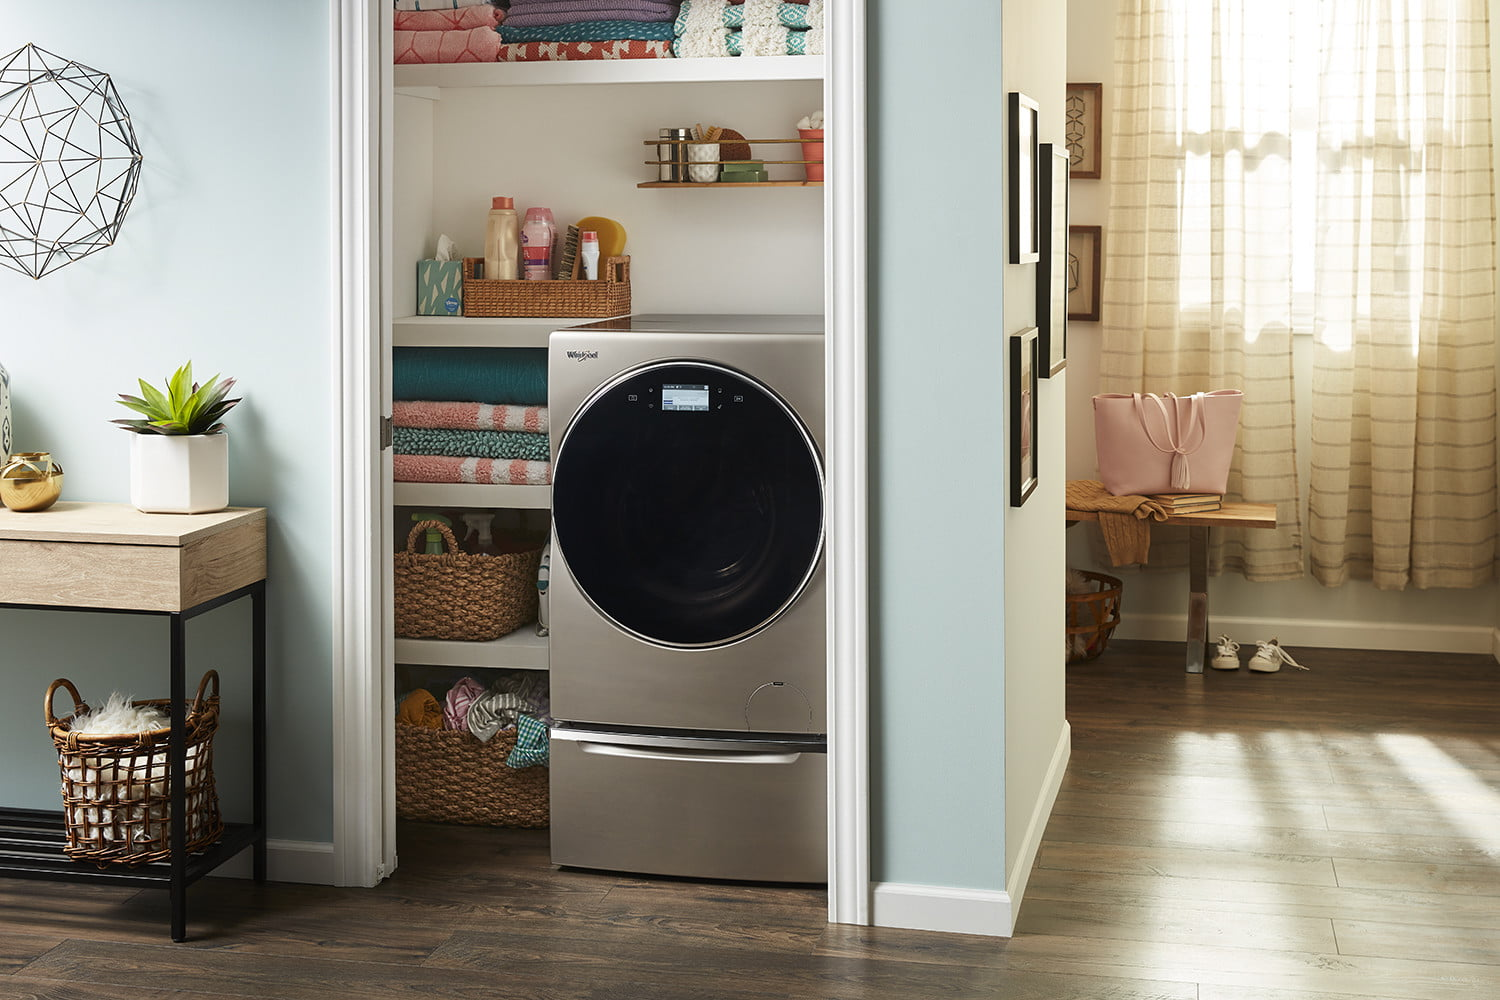 Us Makers Raising Prices For Washing Machines Cause Unclear Together With Samsung Electric Clothes Dryer Additionally Maytag Digital Trends